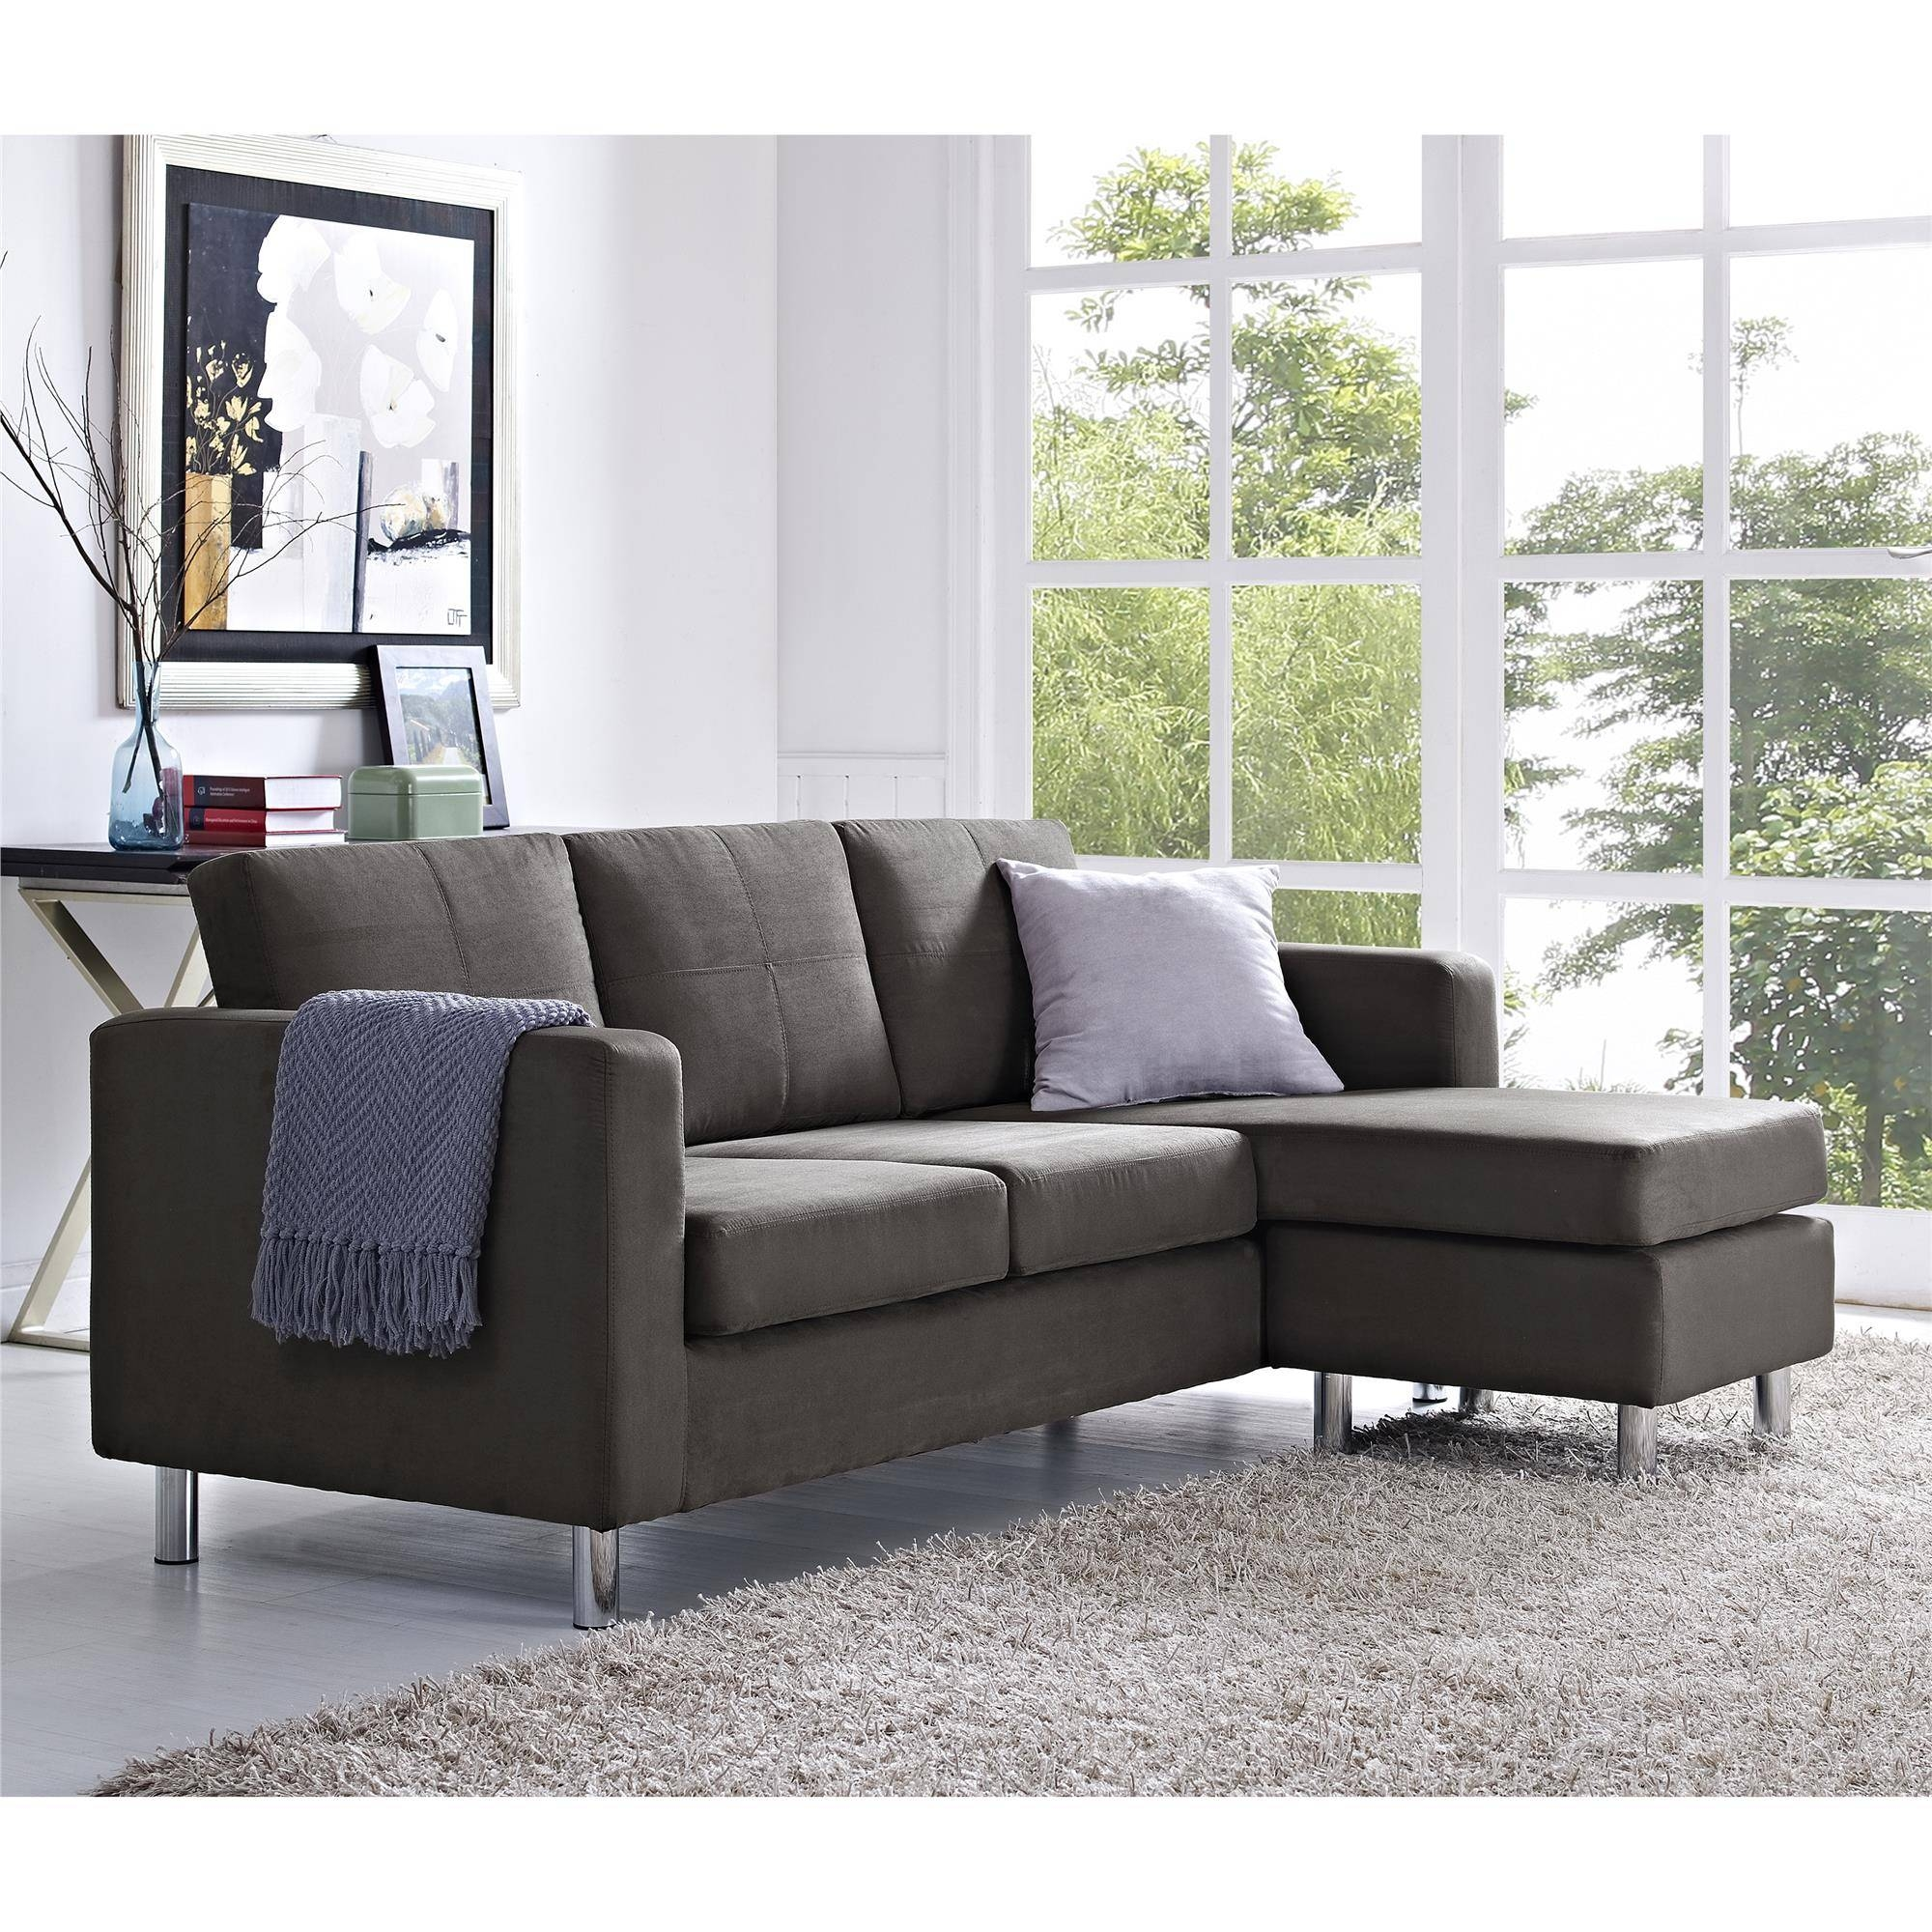 Furniture & Sofa: Perfect Small Spaces Configurable Sectional Sofa Pertaining To Apartment Sofa Sectional (Image 17 of 30)